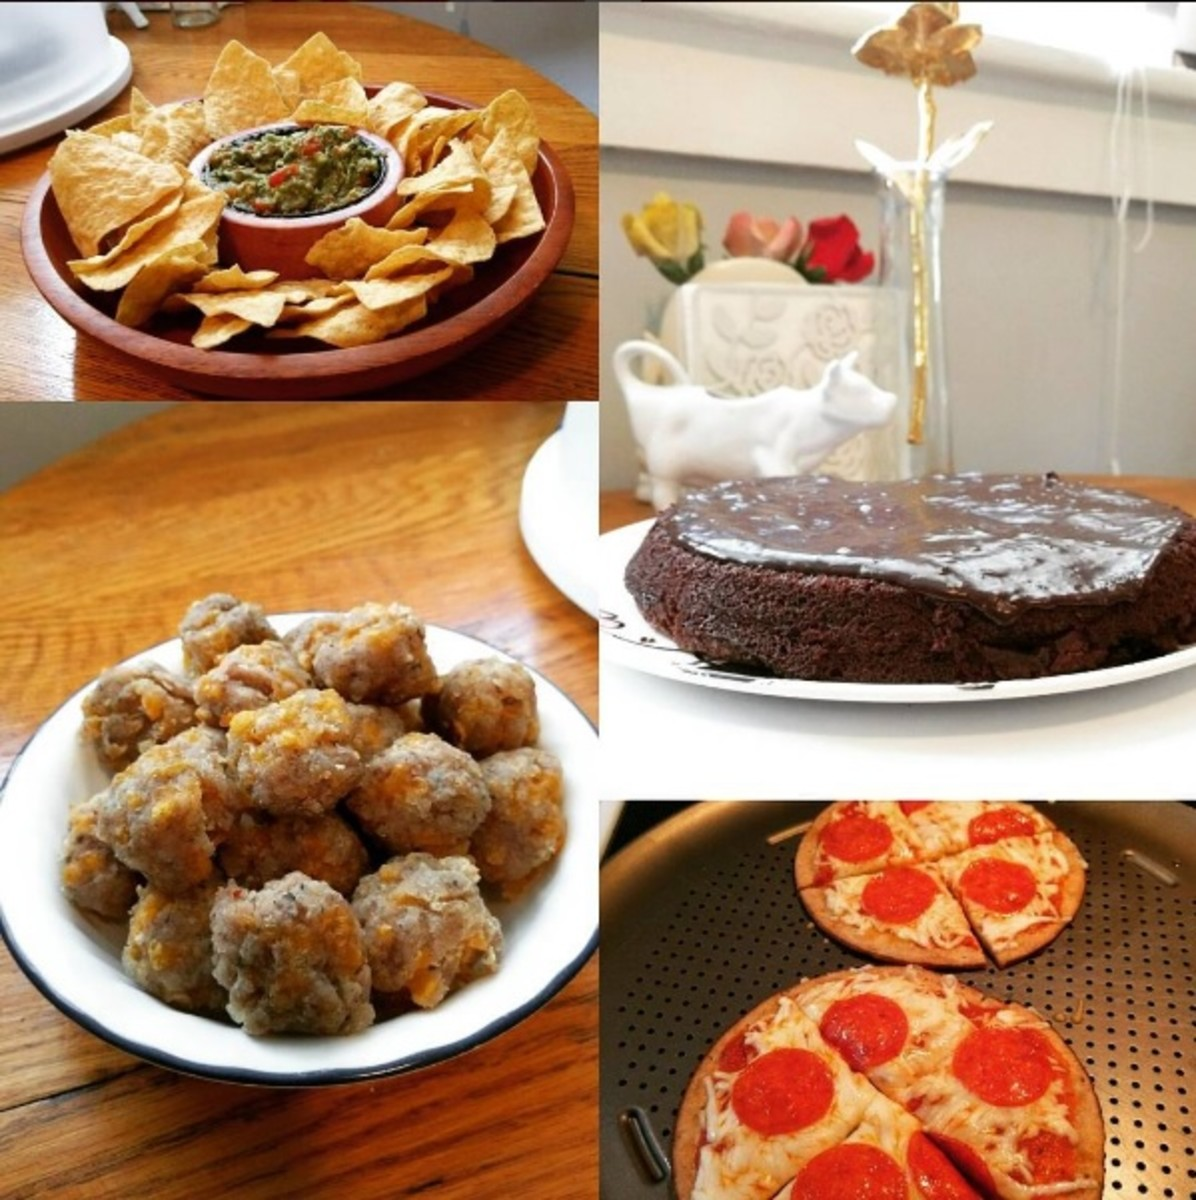 Sausage balls (lower left) and some other gluten-free party snack ideas.